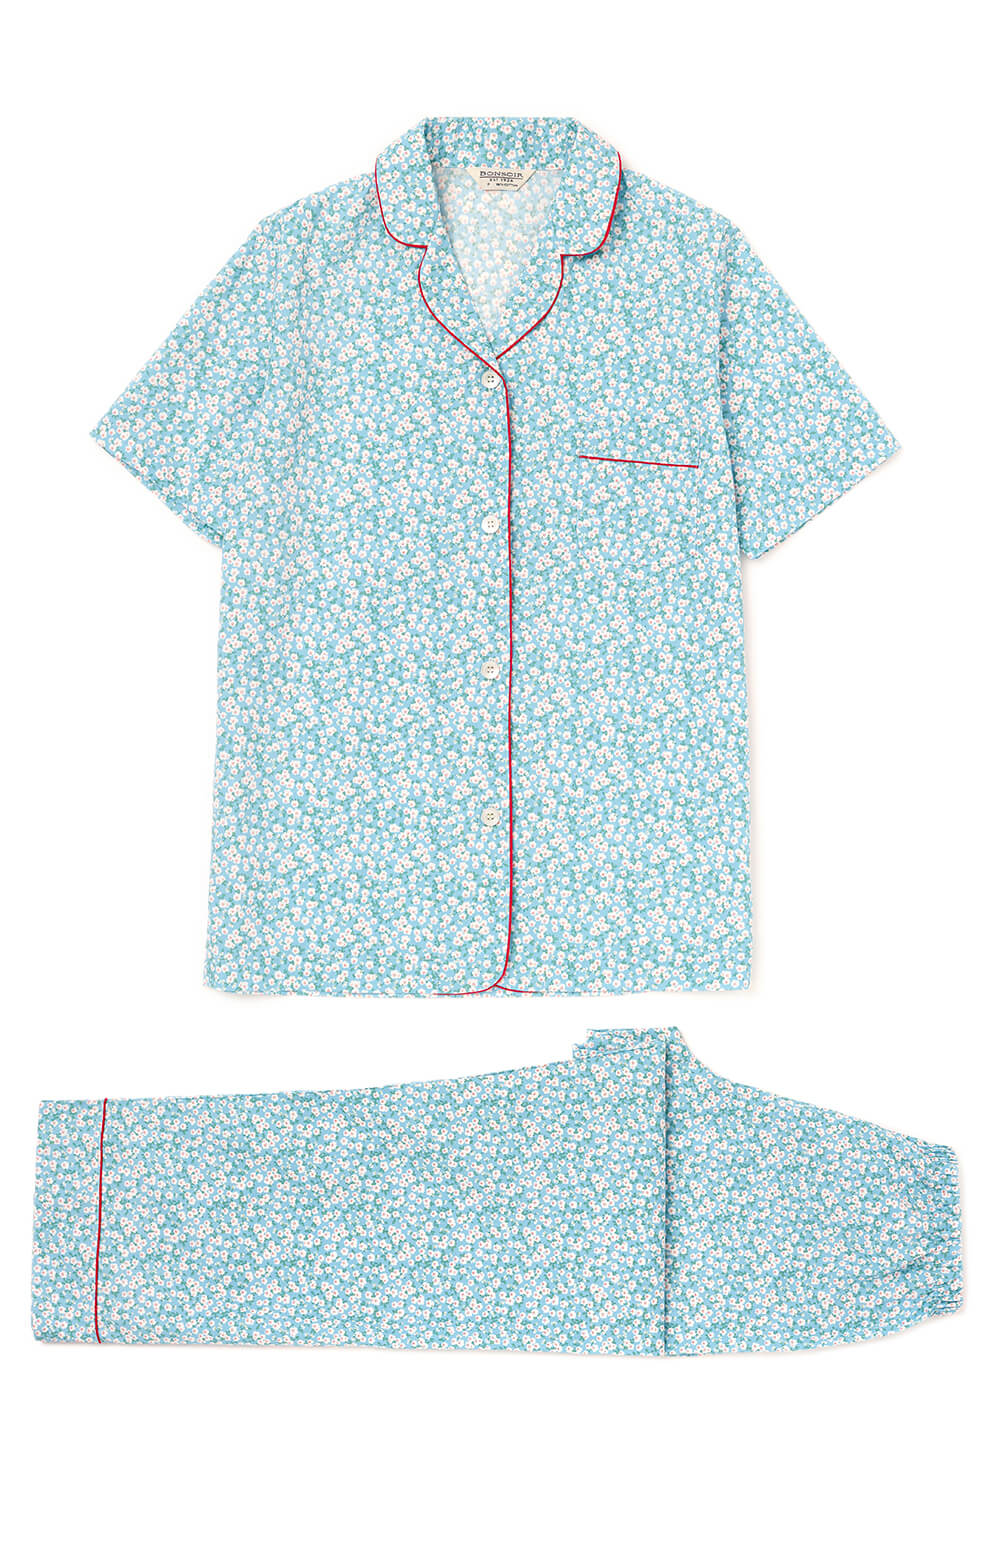 483e67cc Classic Cotton Short Sleeve Pyjamas (Clph) - Blue Floral | Bonsoir ...